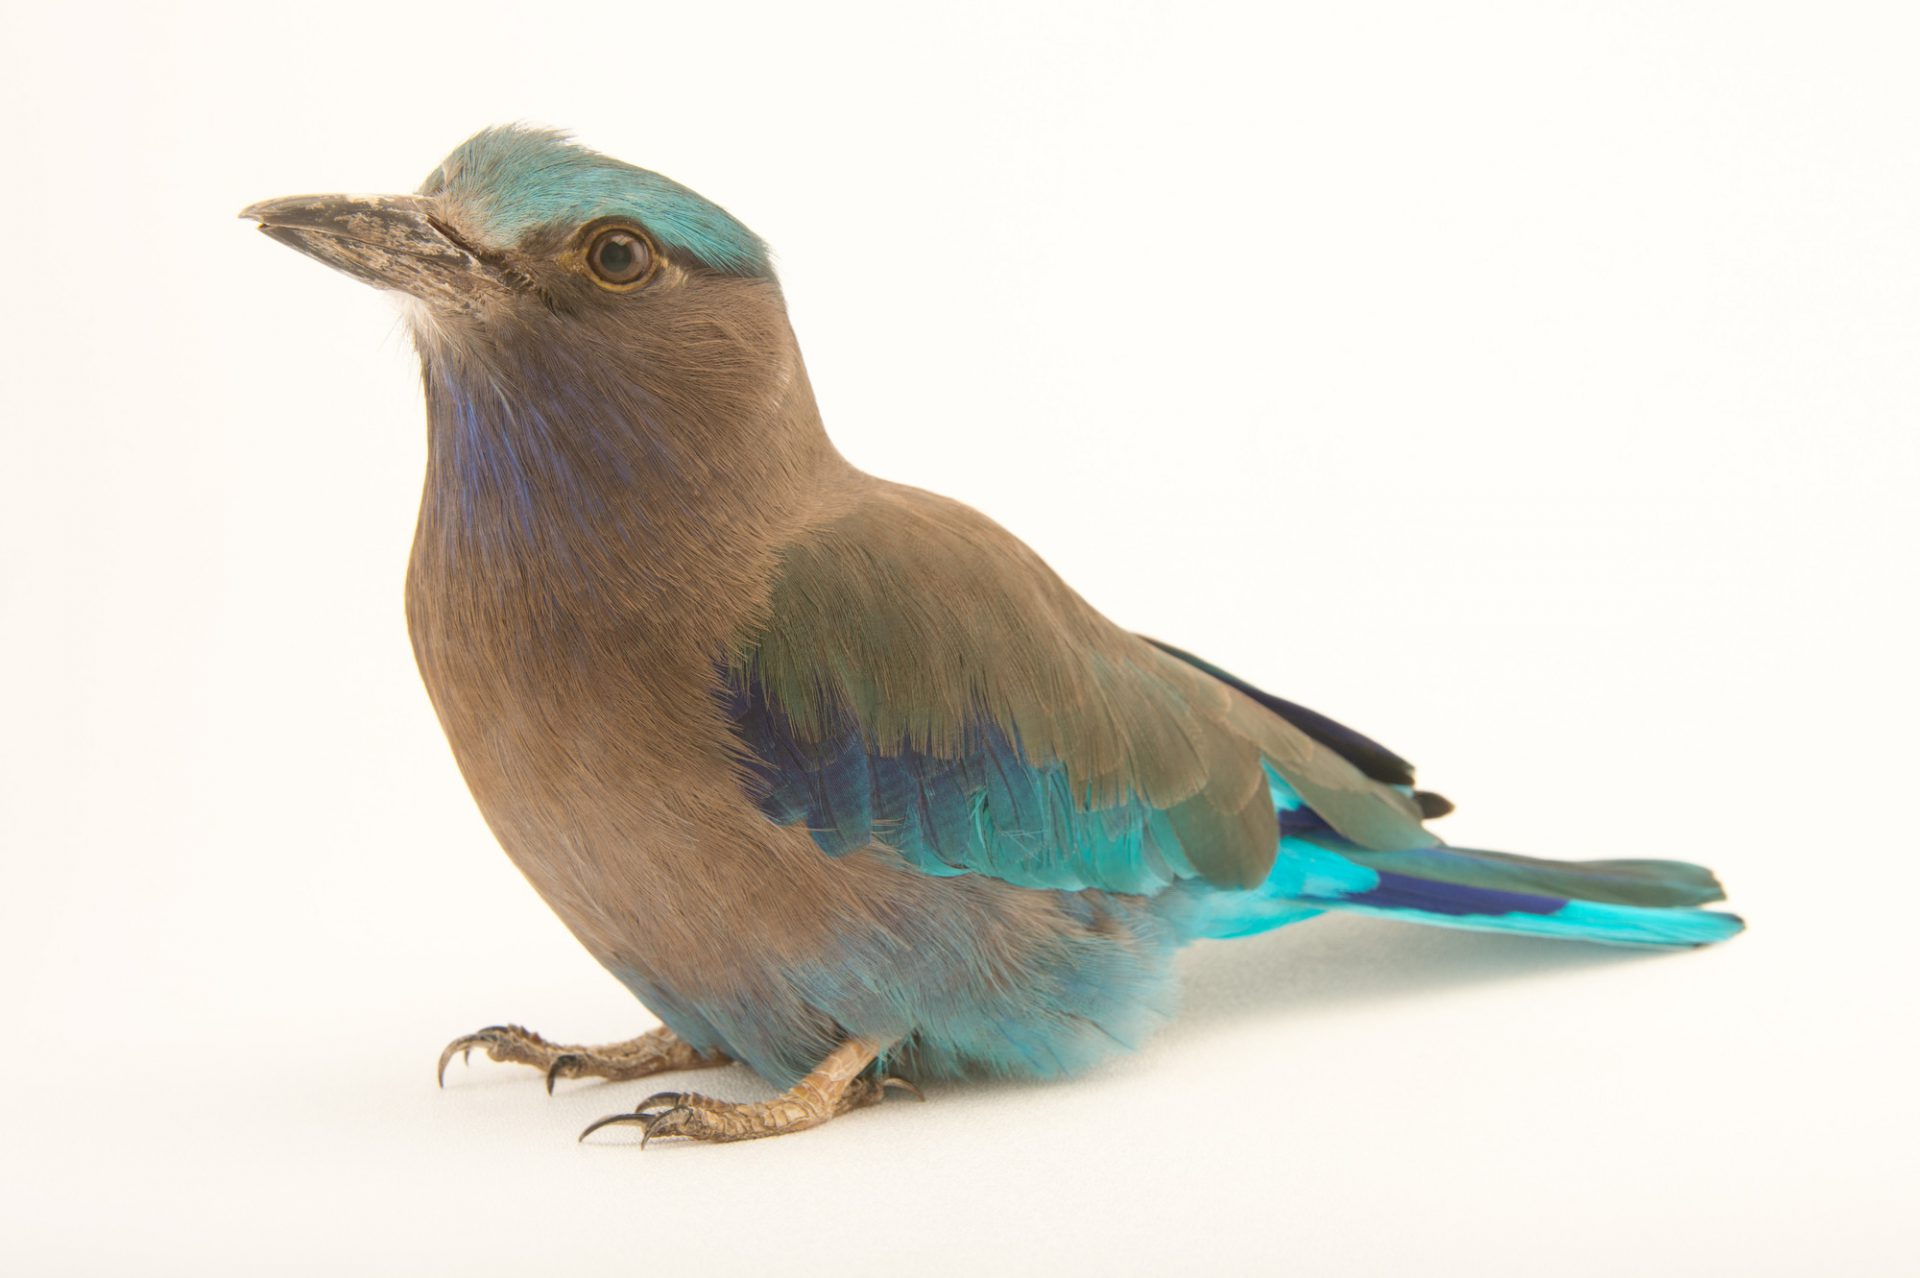 Photo: An Indian roller (Coracias benghalensis affinis) at the Santa Barbara Zoo.